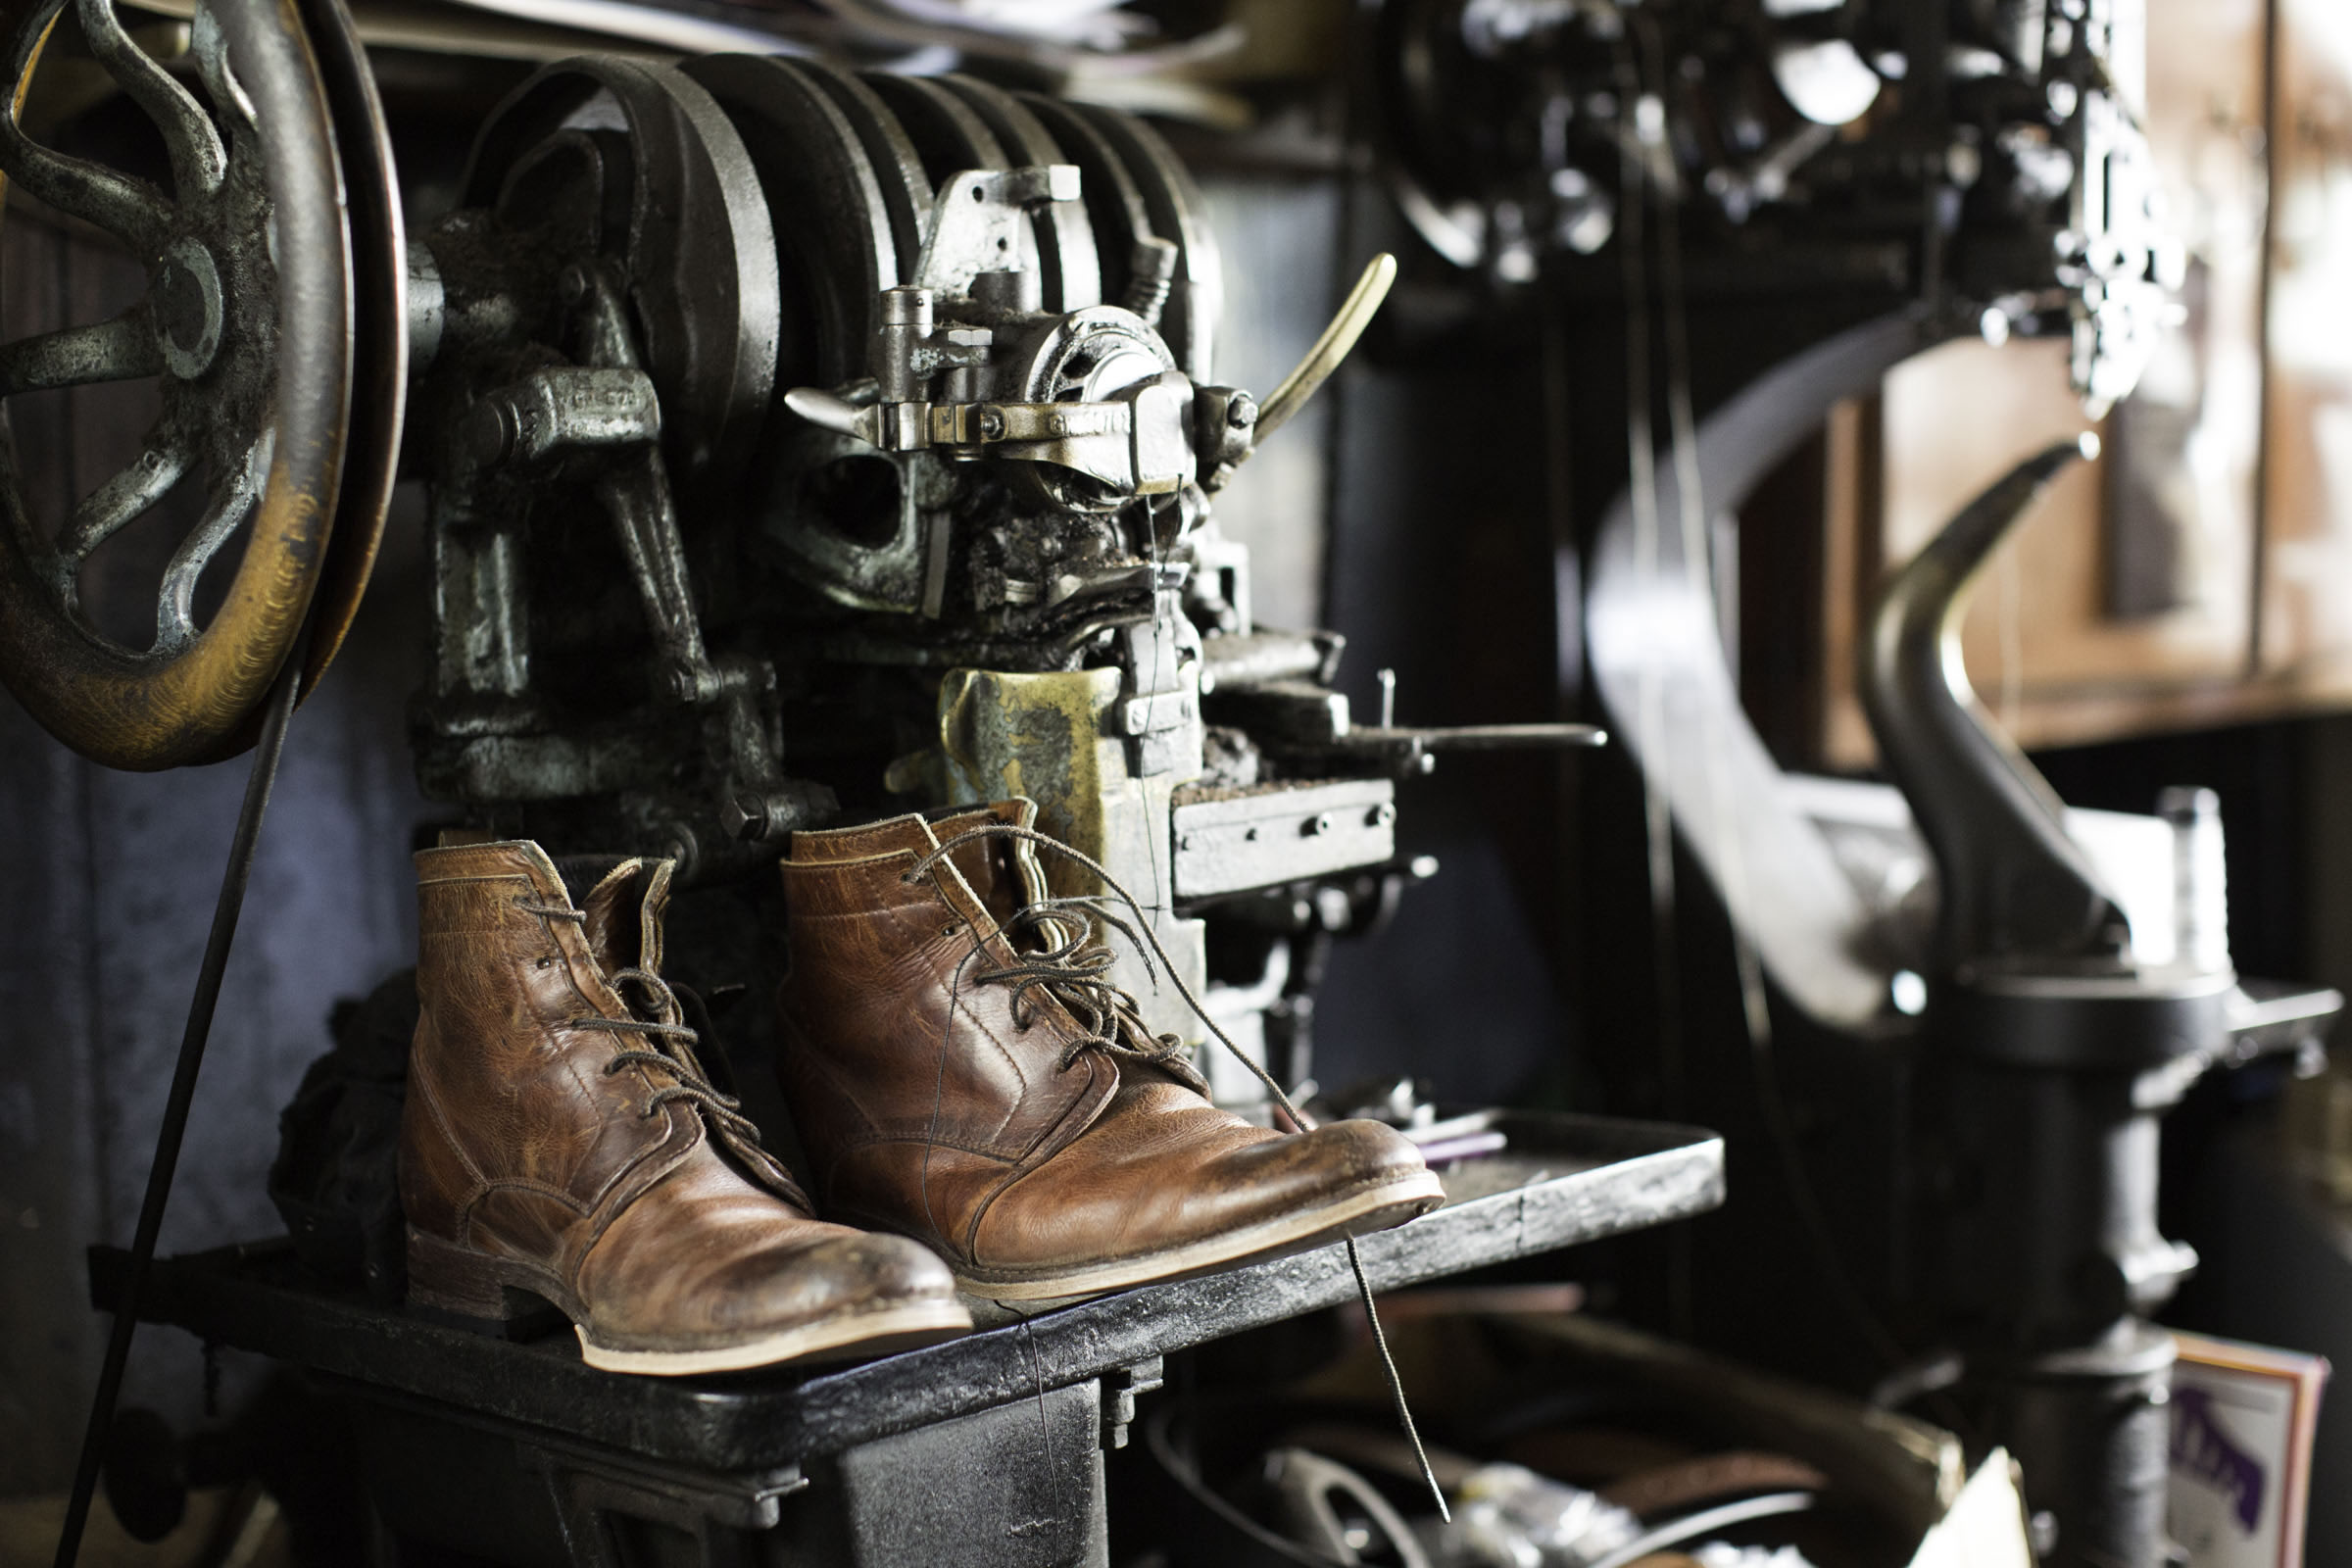 aff8d8f2ff916 About — Isaac Jackman - Shoe Repairs